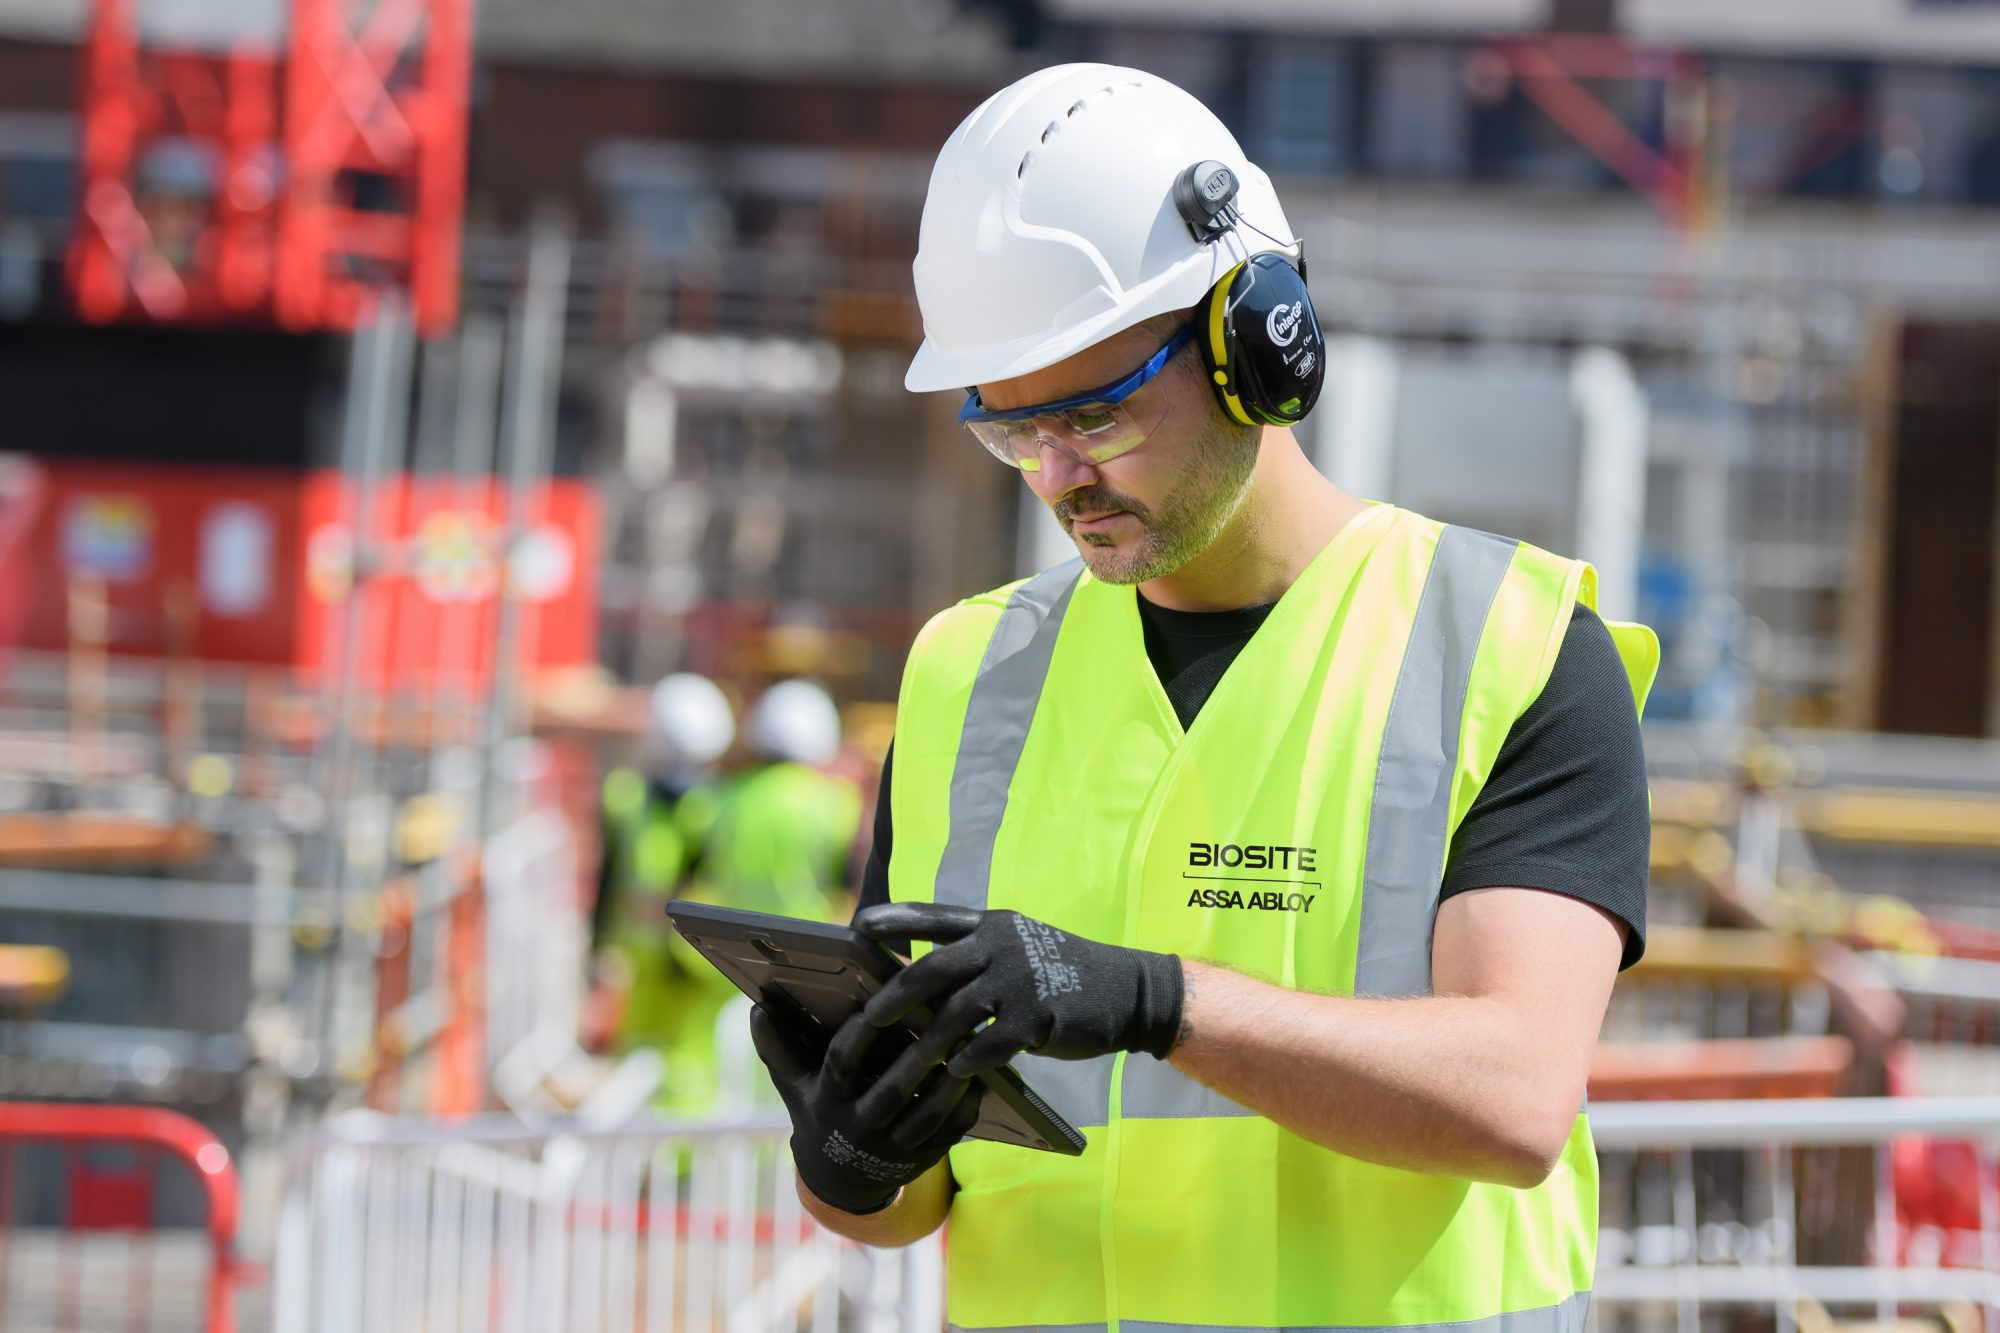 HS2 implements project-wide digital health and safety passport